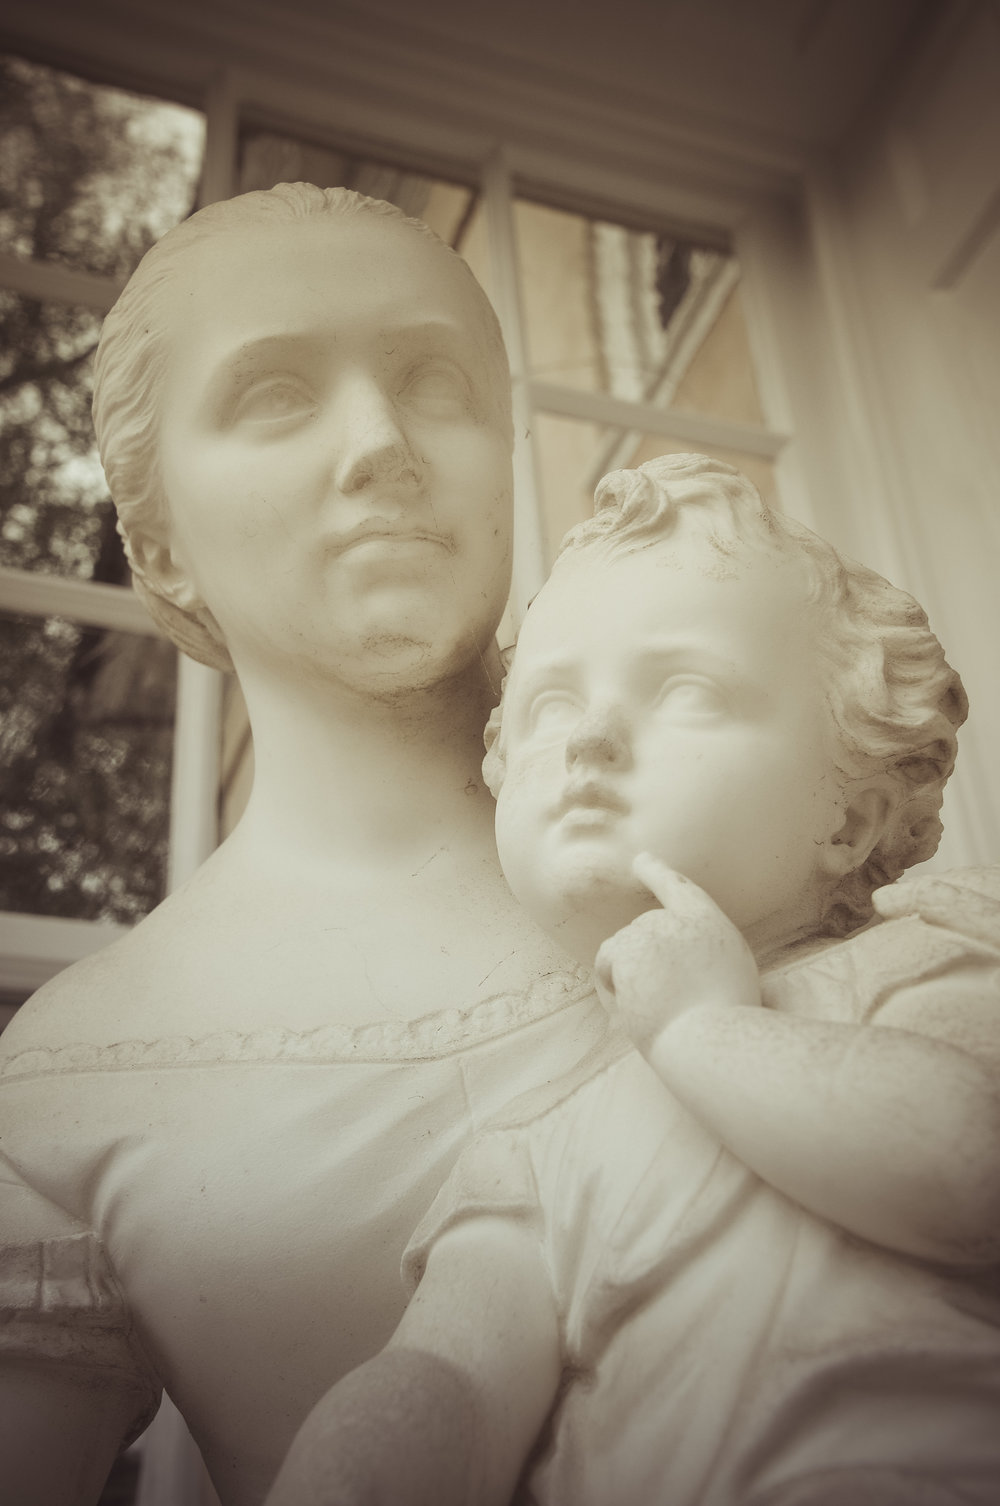 White Madonna (Statue at Hampton Plantation) Photo: Rose Anderson, 2018